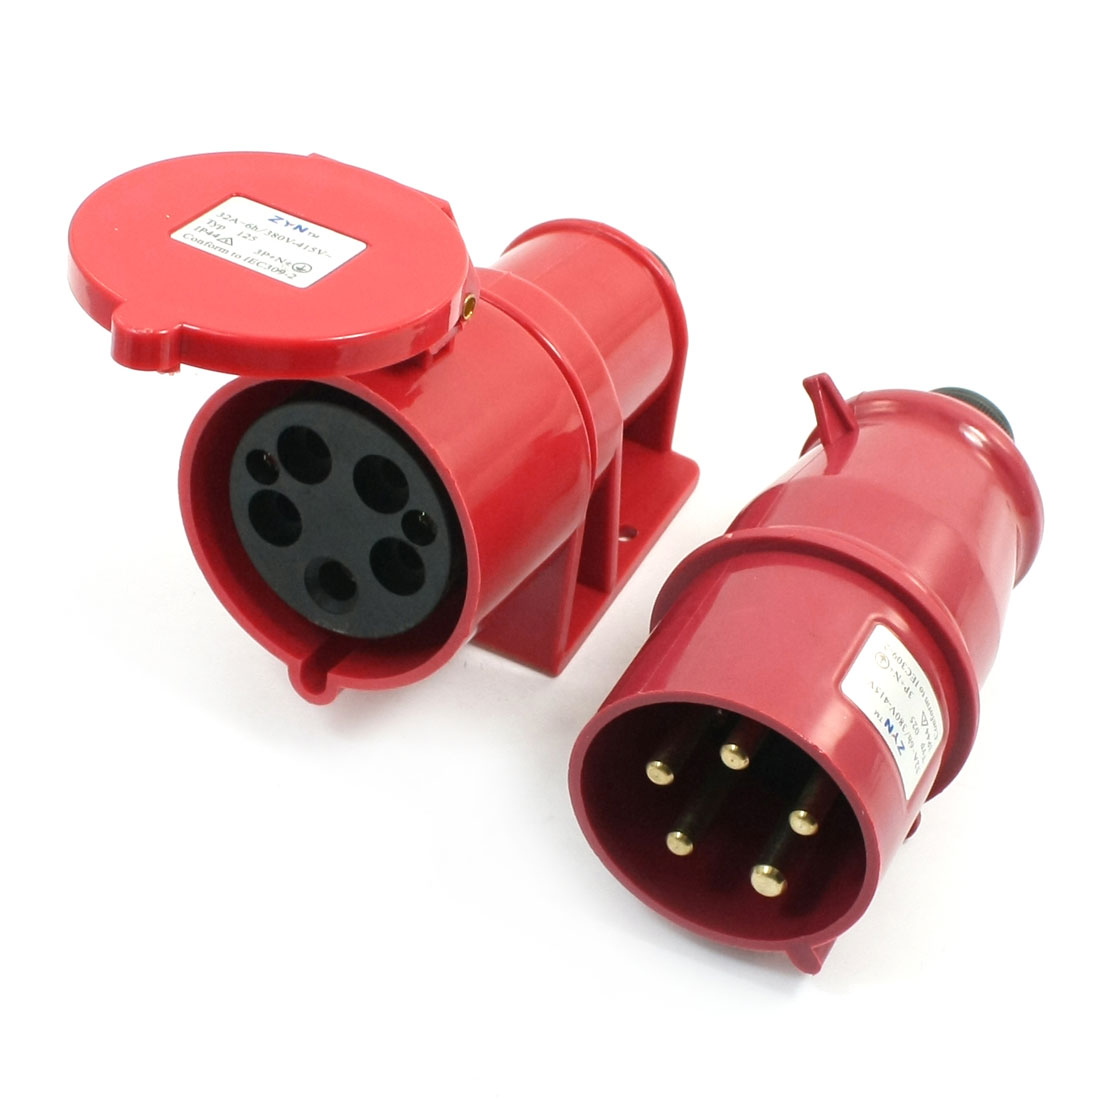 Waterproof IEC309-2 3P+E+N Industrial Connector Socket Red AC 380-415V 32Amp